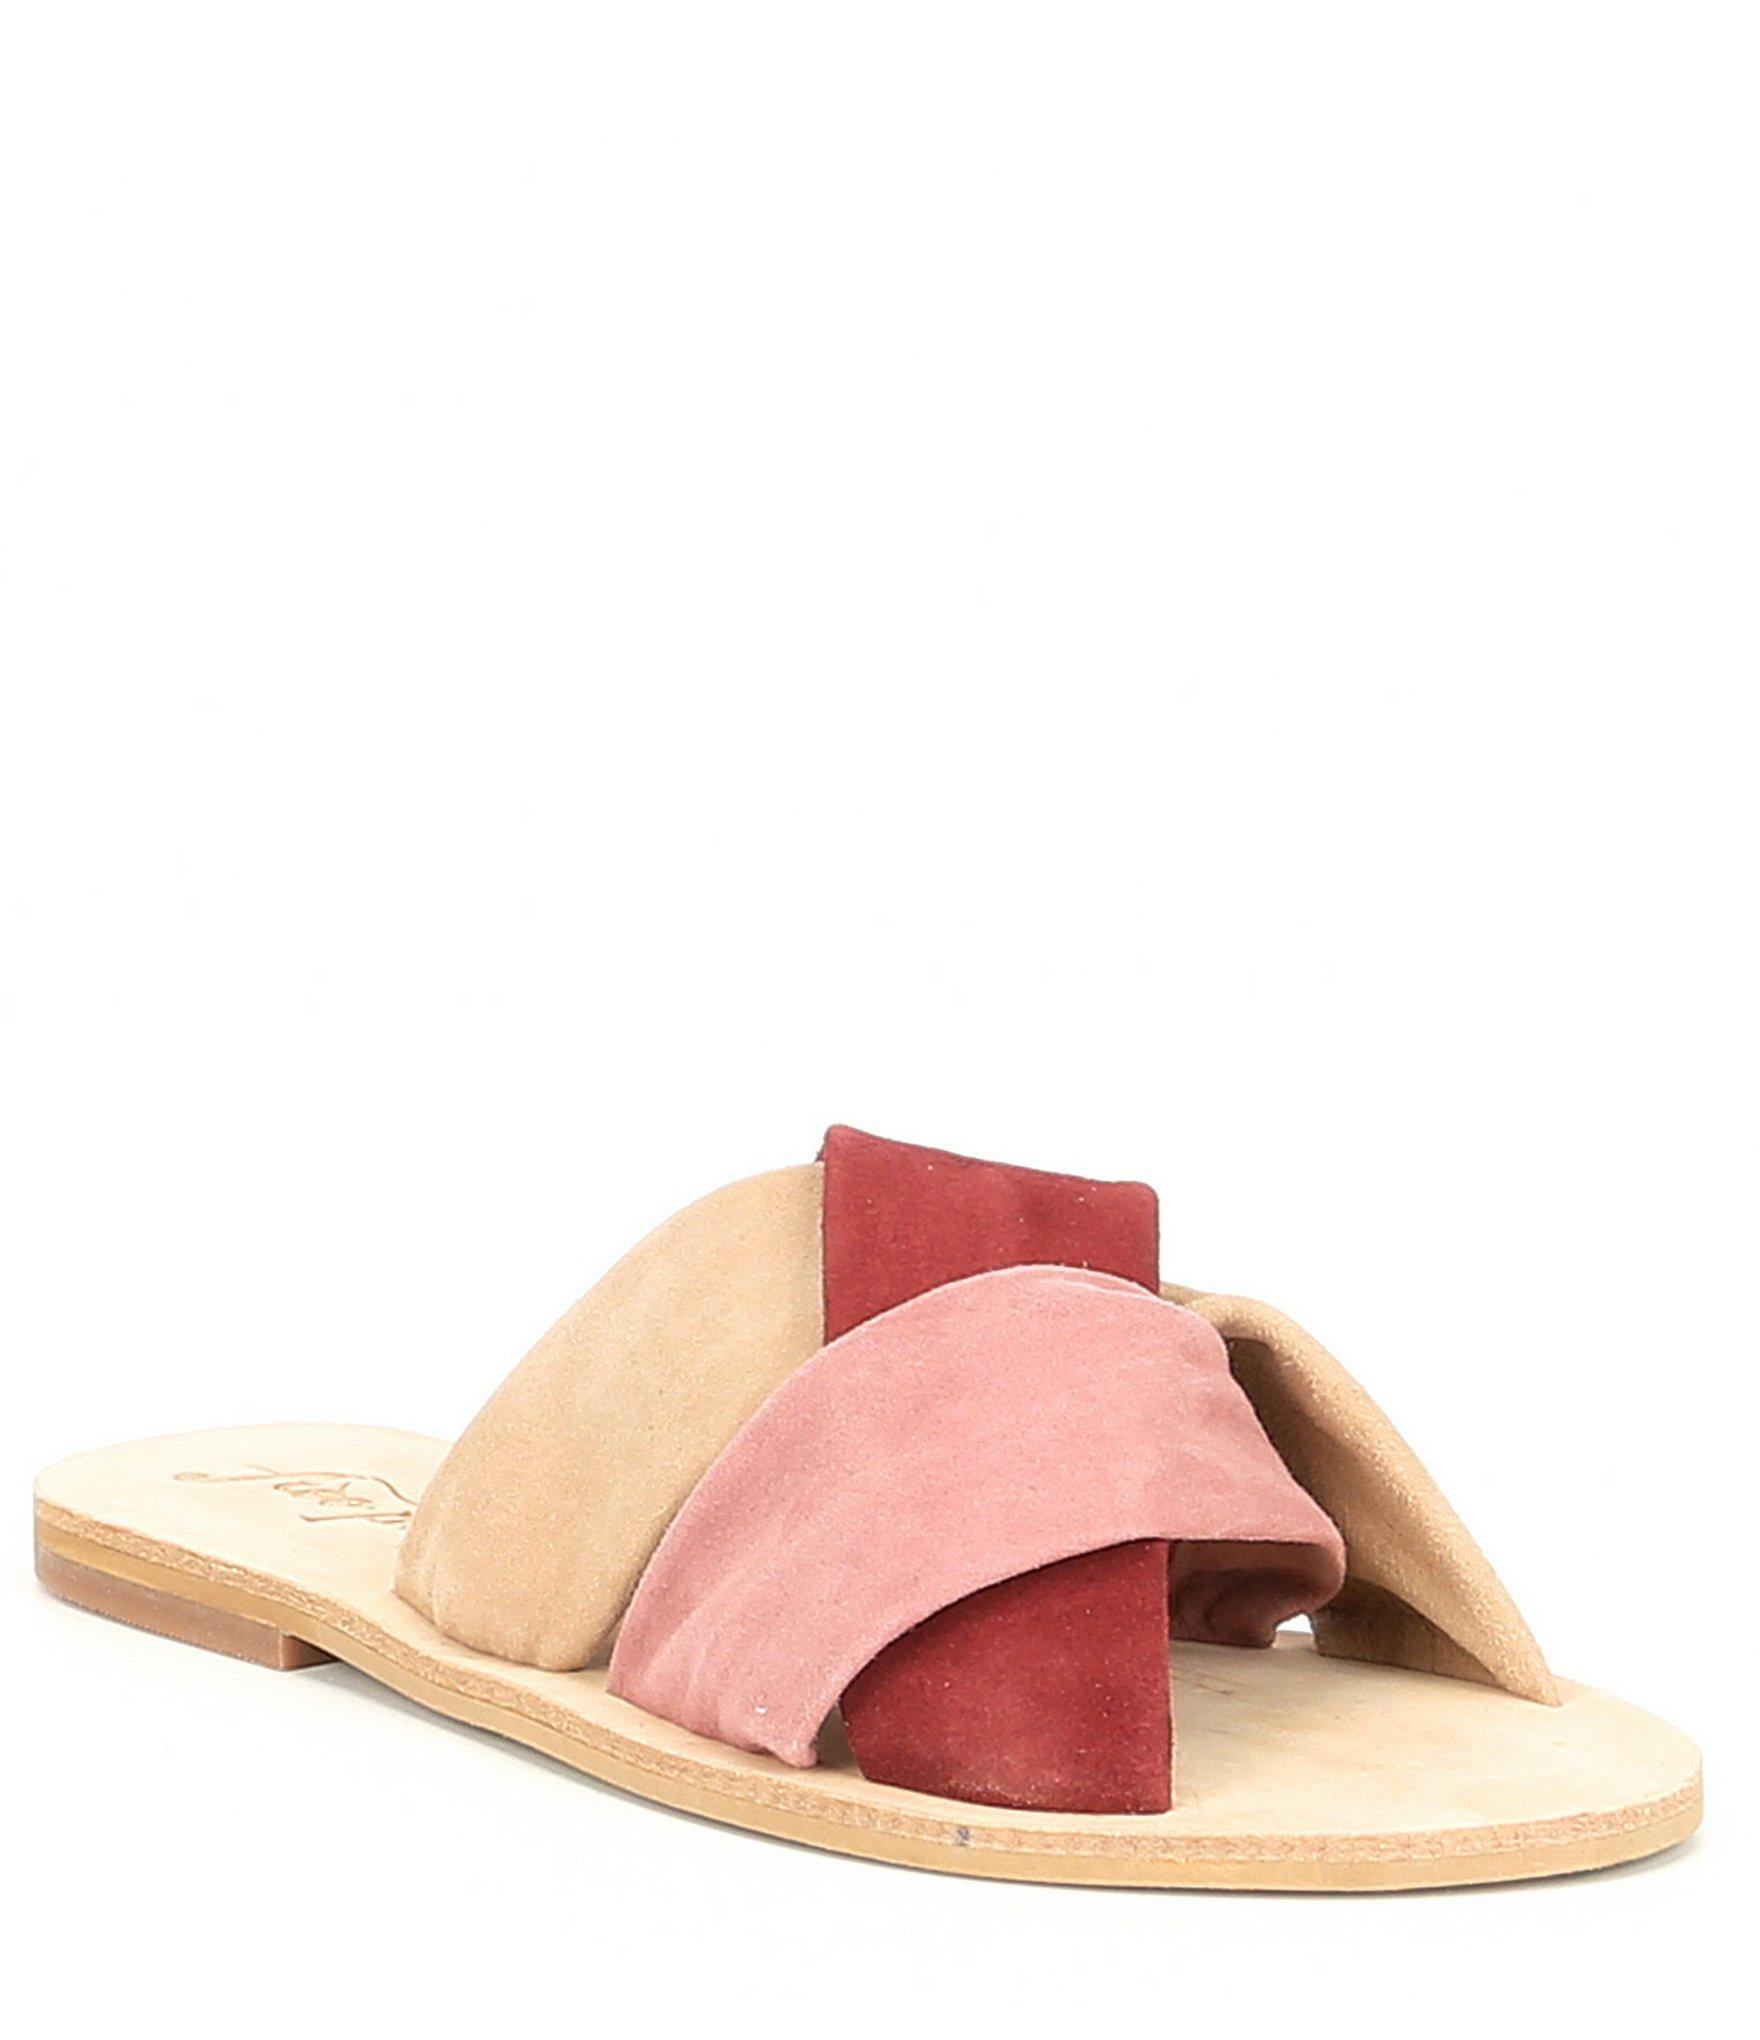 c20cde1e0982 Lyst - Free People Rio Vista Suede Slide Sandals in Pink